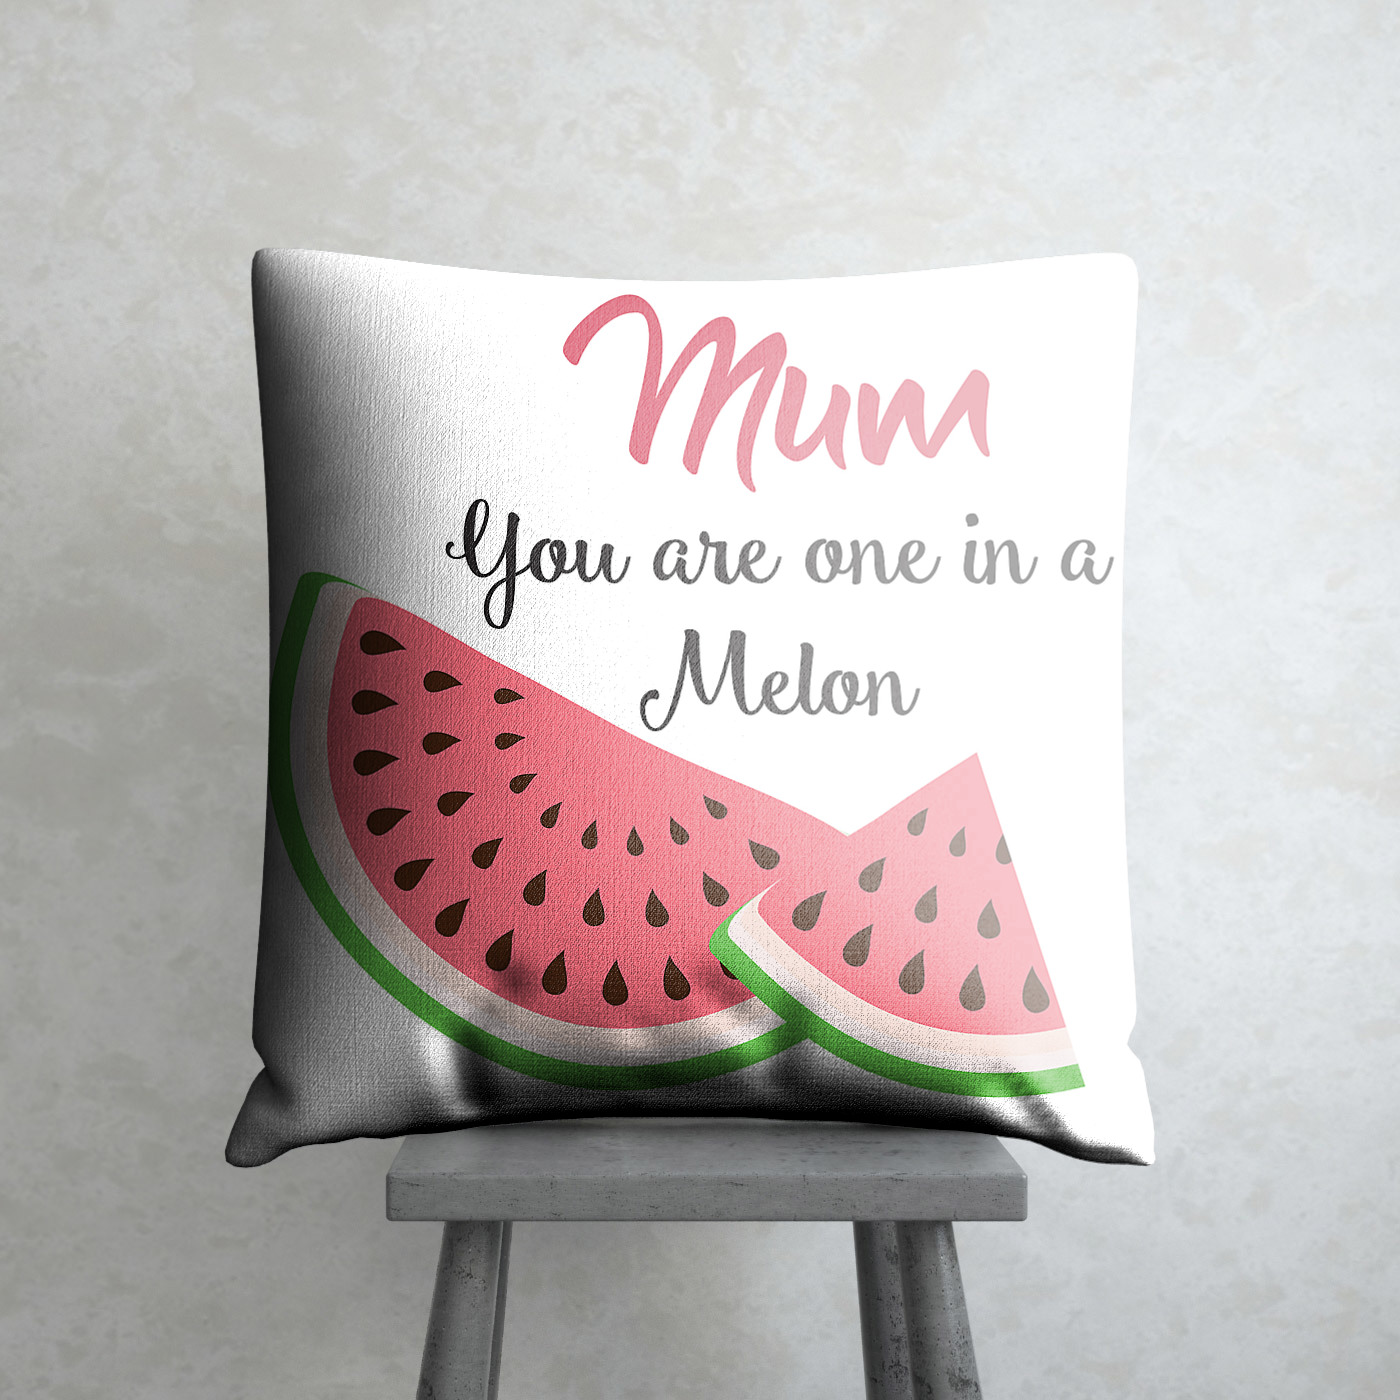 One in a Melon Print on Cushion for Mom